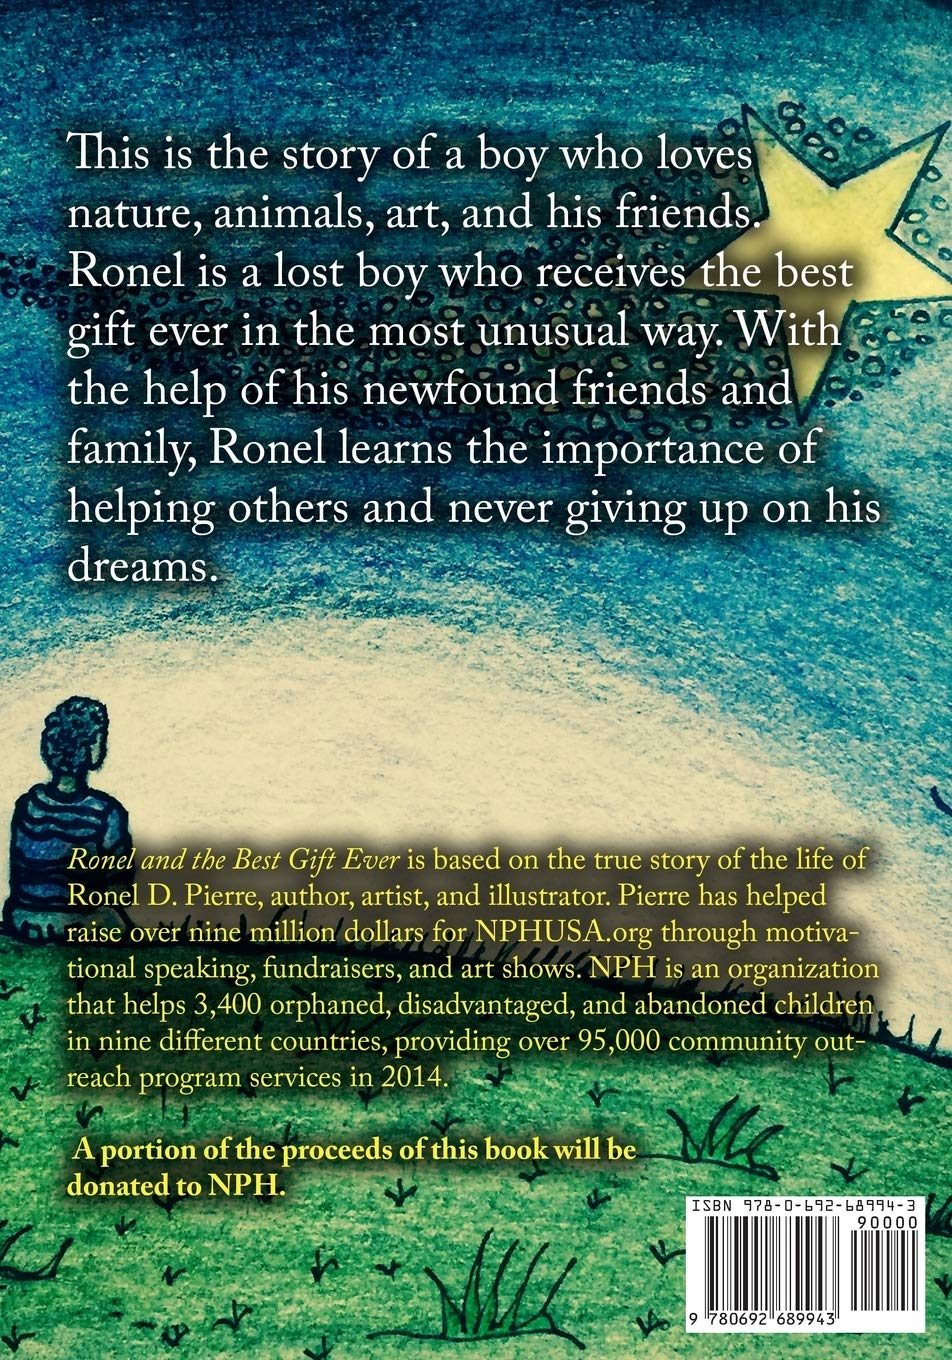 Read Ronel The Best Gift Ever The Story Of A Boys Love For Animals Nature Art And His Friends By Ronel Pierre